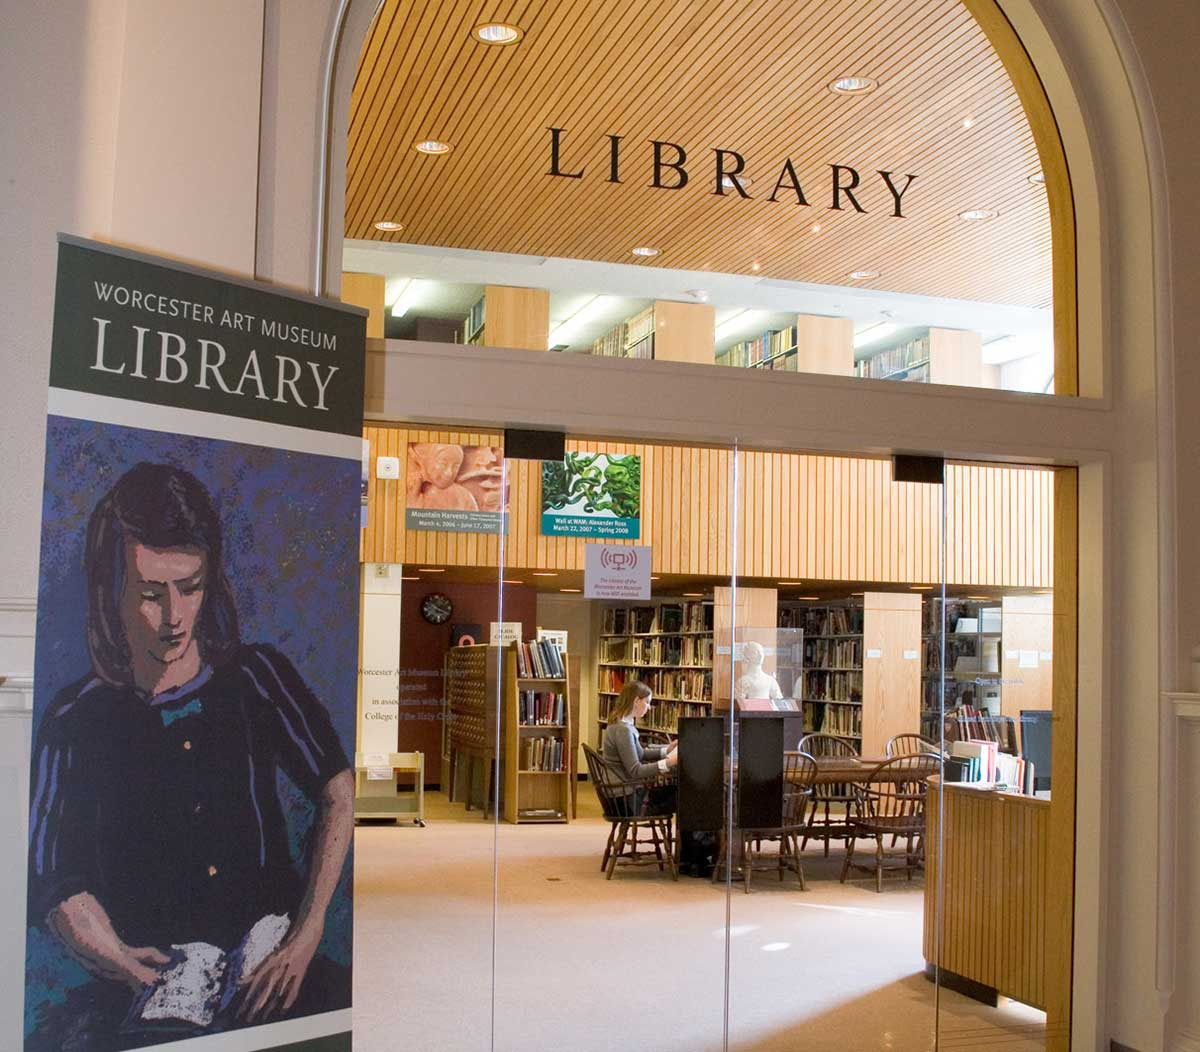 The Museum library entrance